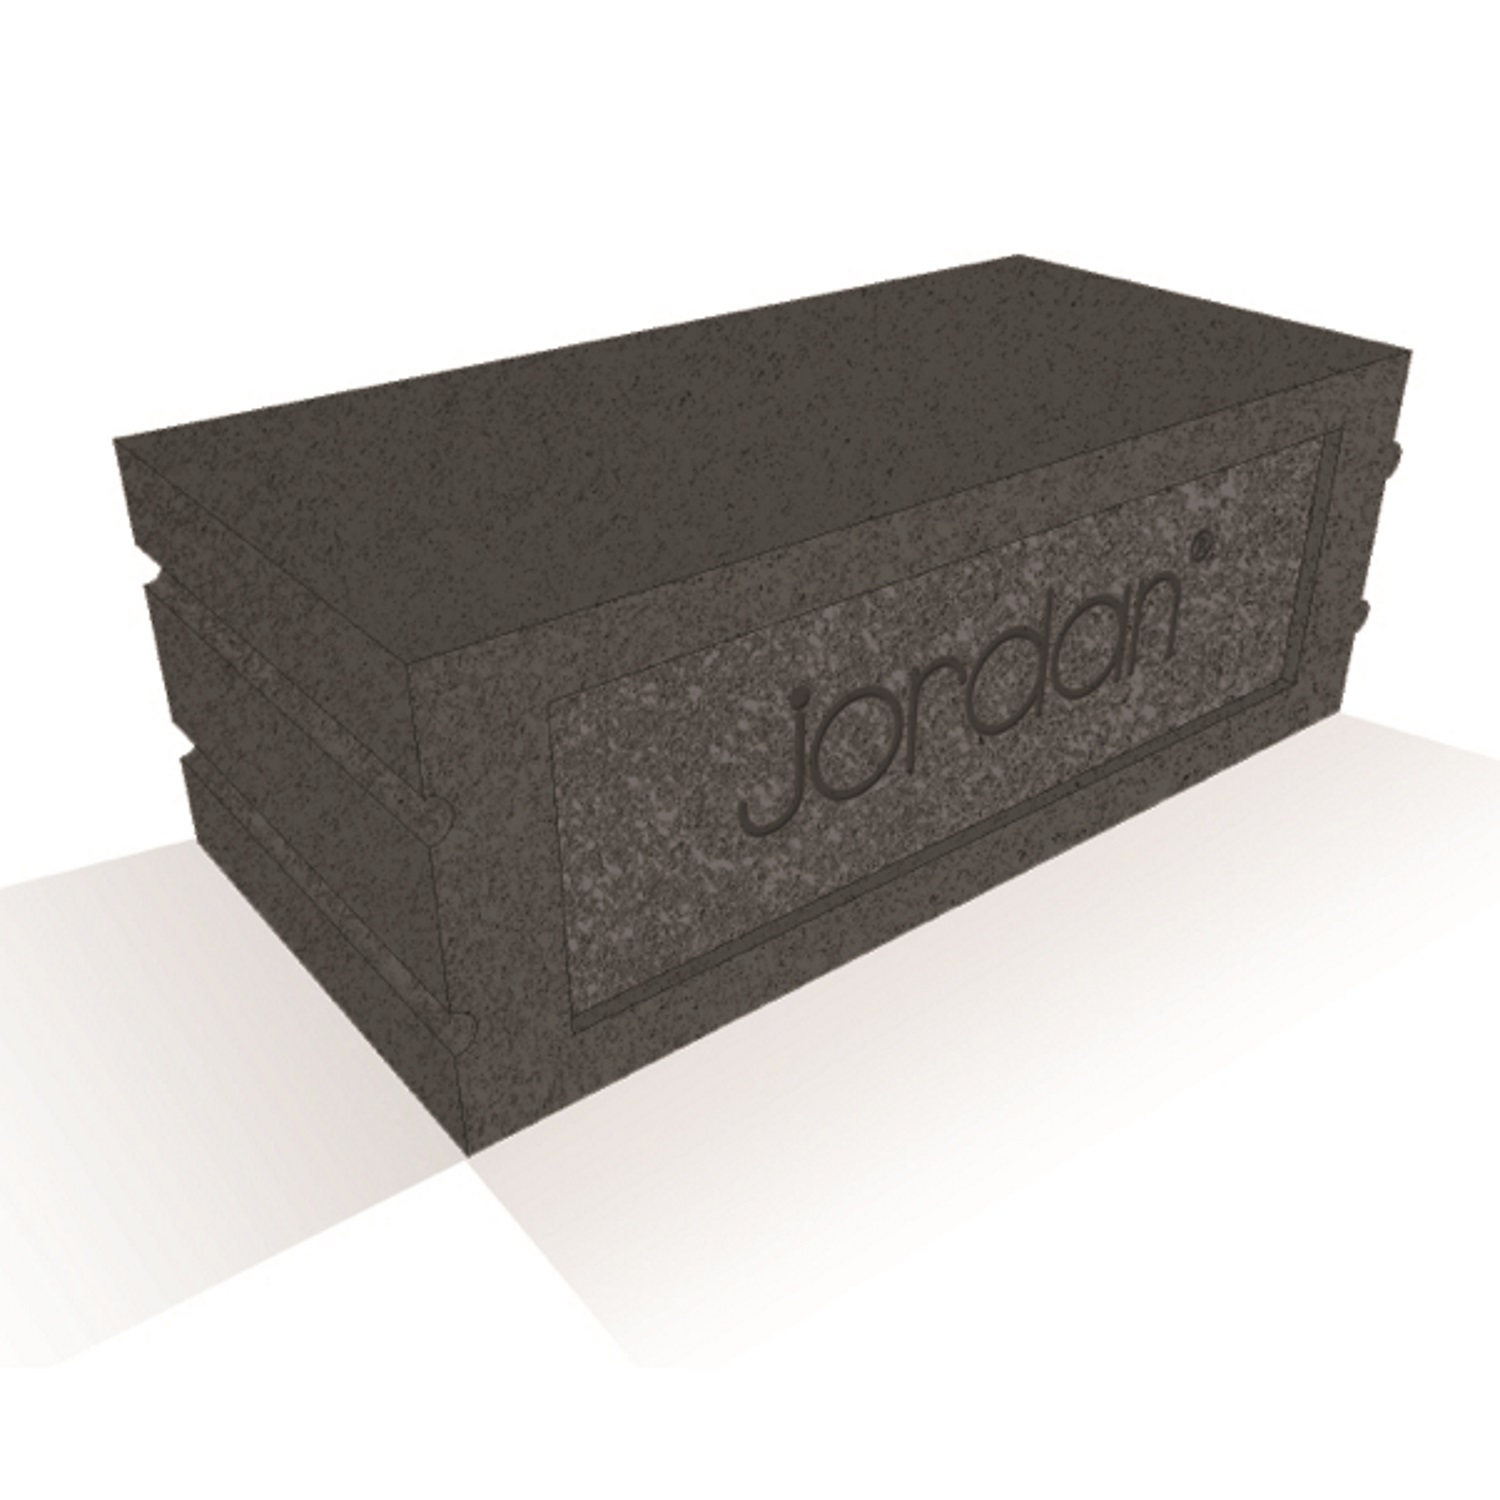 Jordan Functional Block from Netfit.co.uk